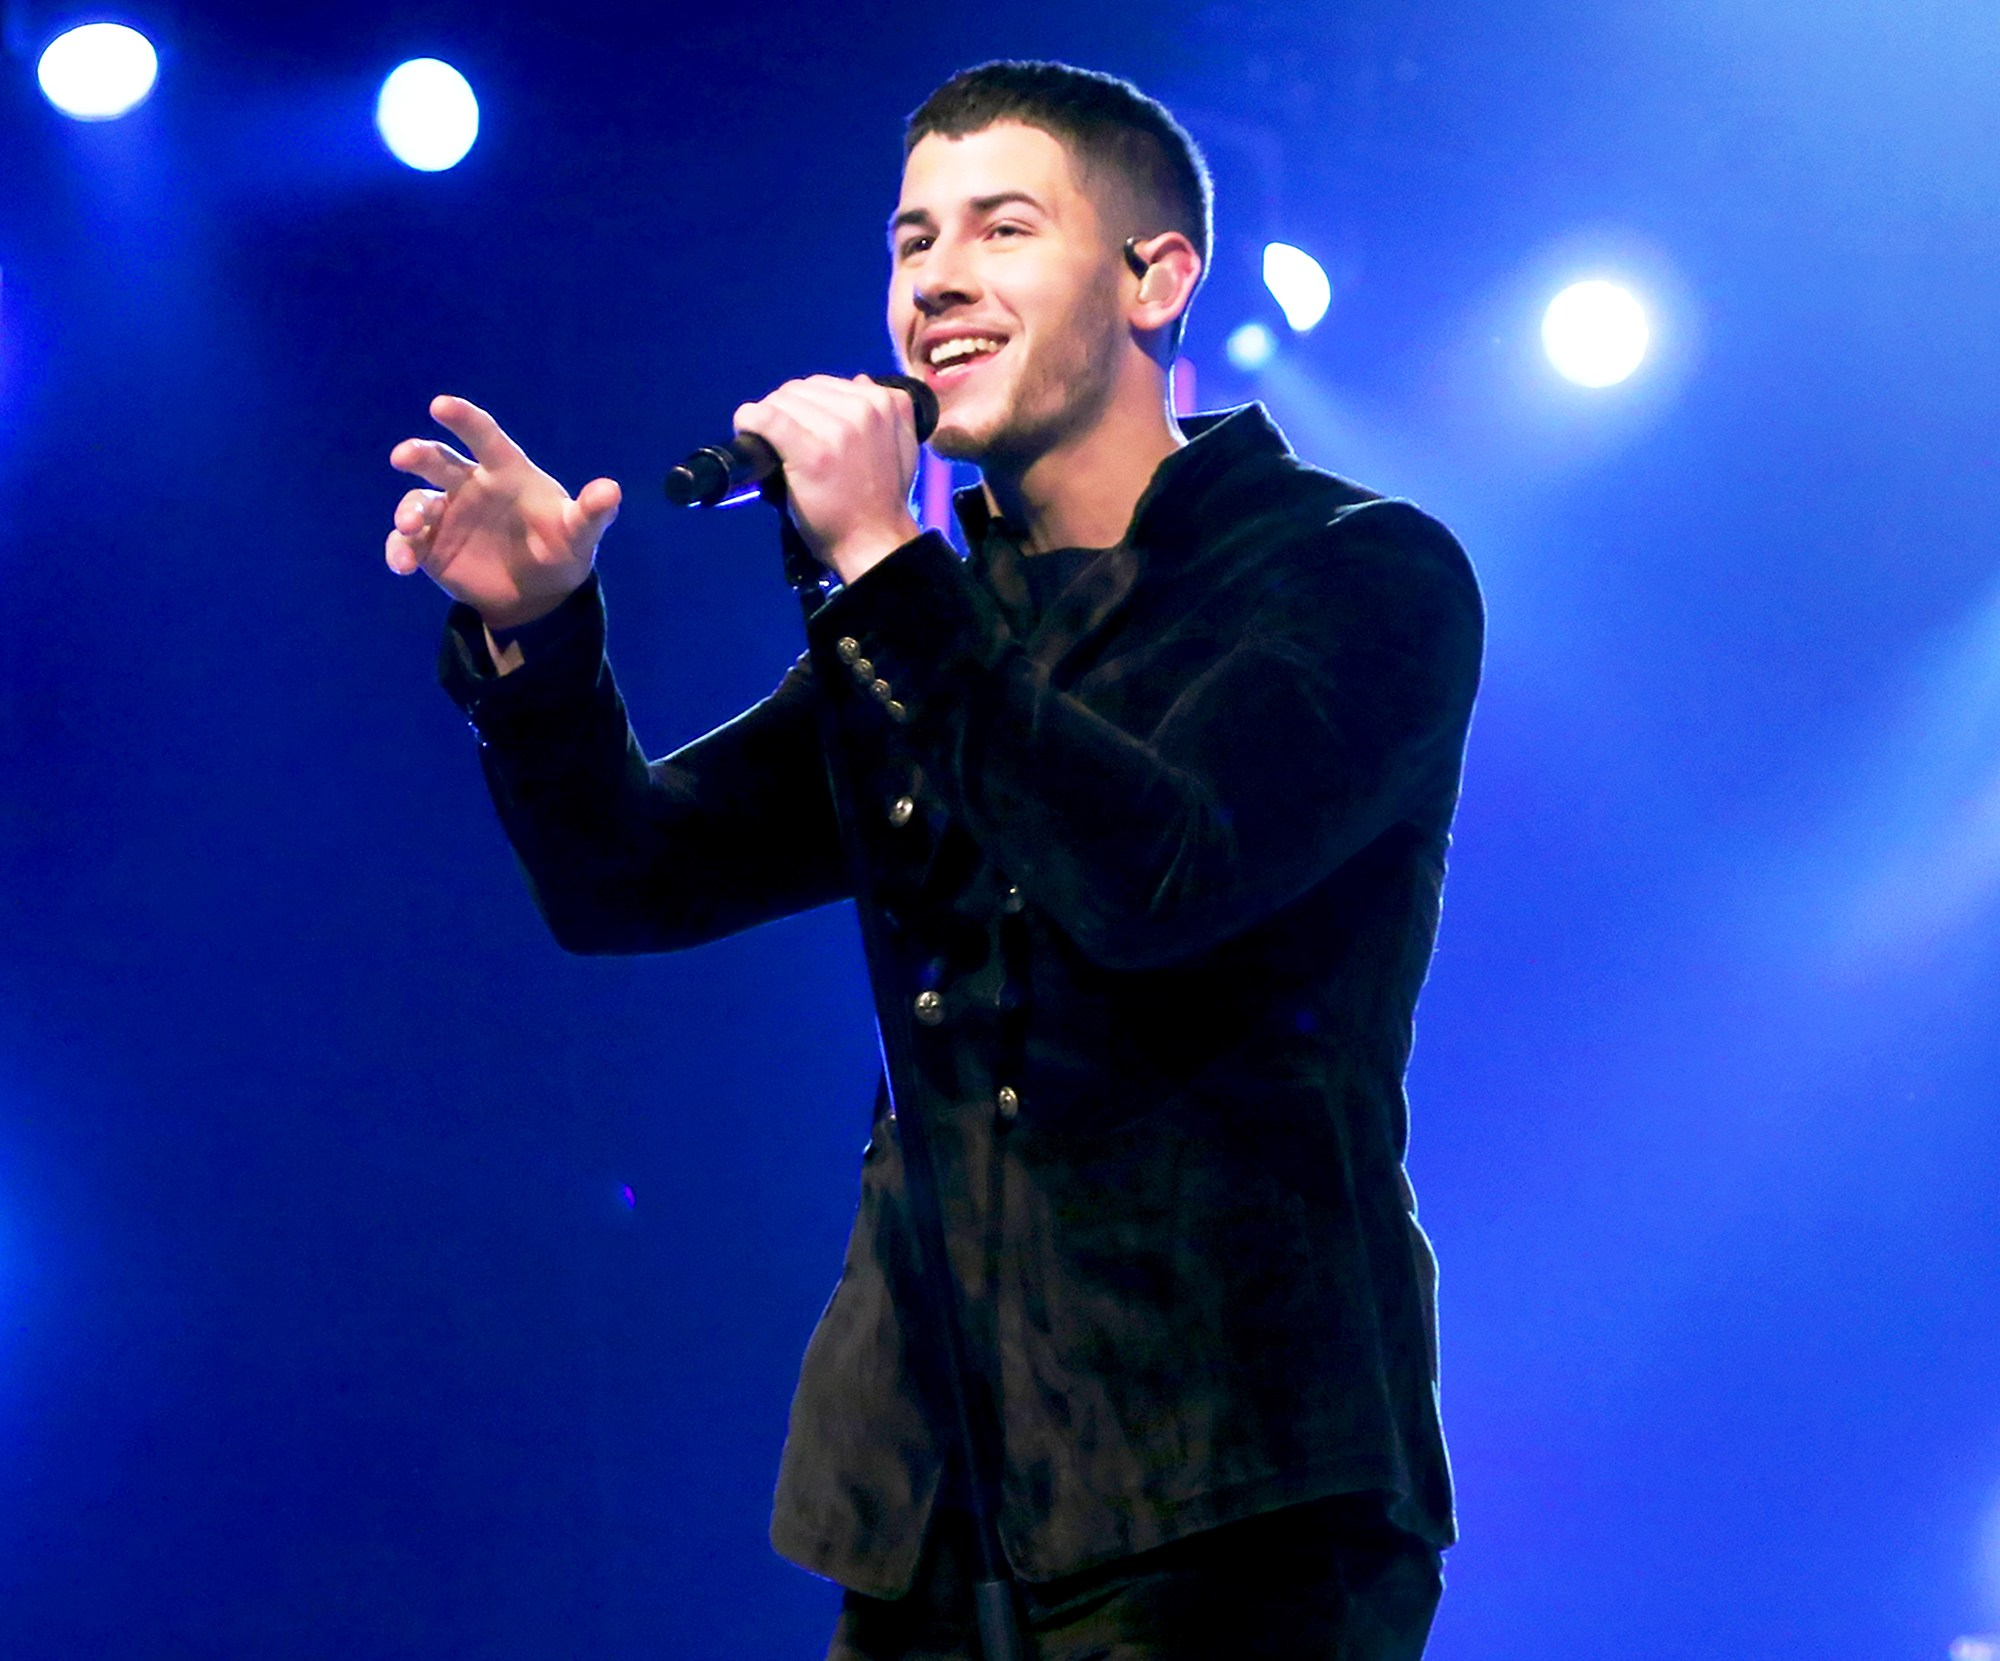 Nick Jonas performs onstage during the 2017 Person of the Year Gala in Las Vegas, Nevada.